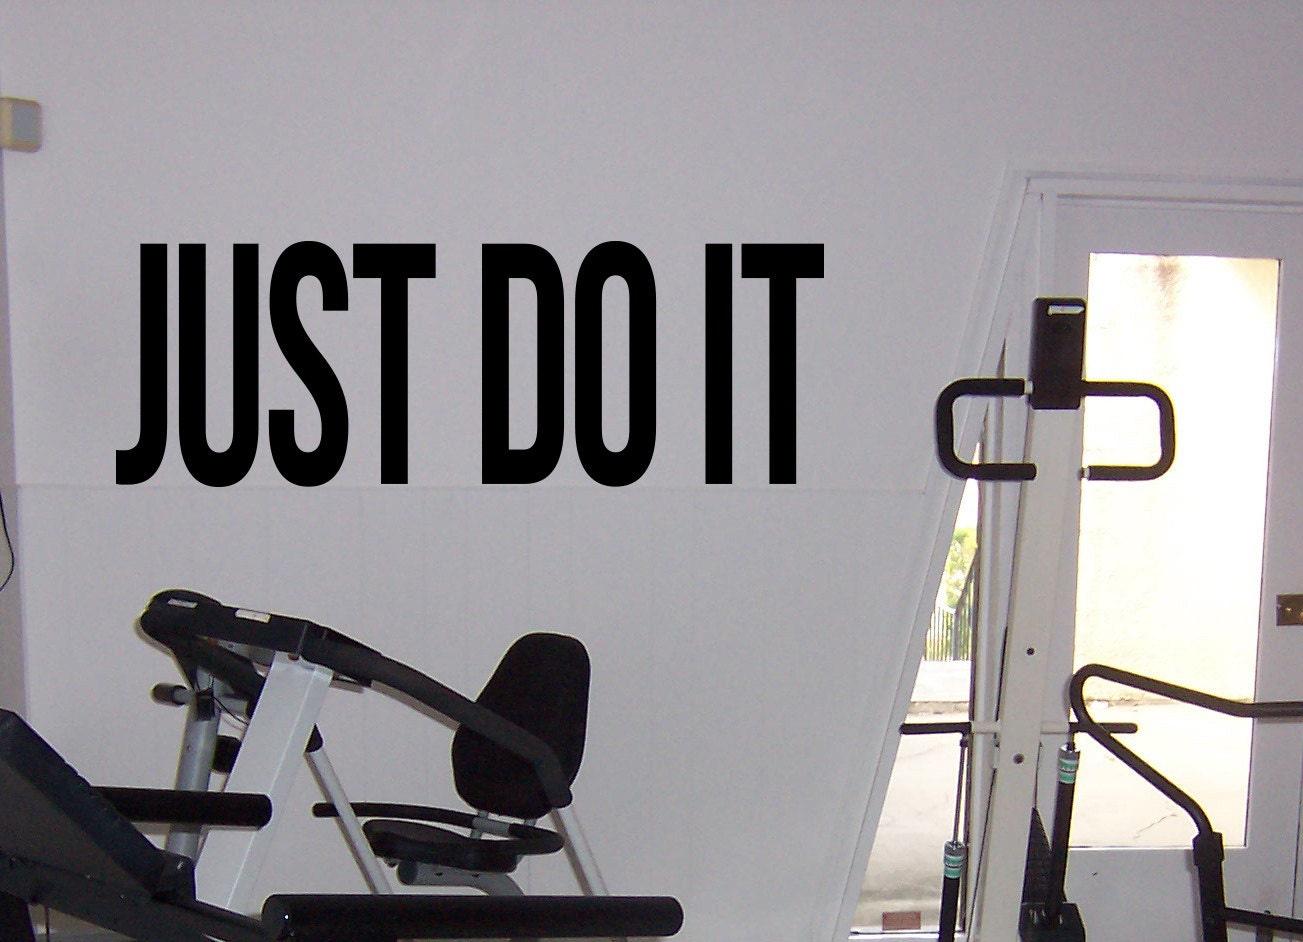 Just Do It Quotes Just Do It Fitness Daily Motivation Vinyl Decal Workout Gym